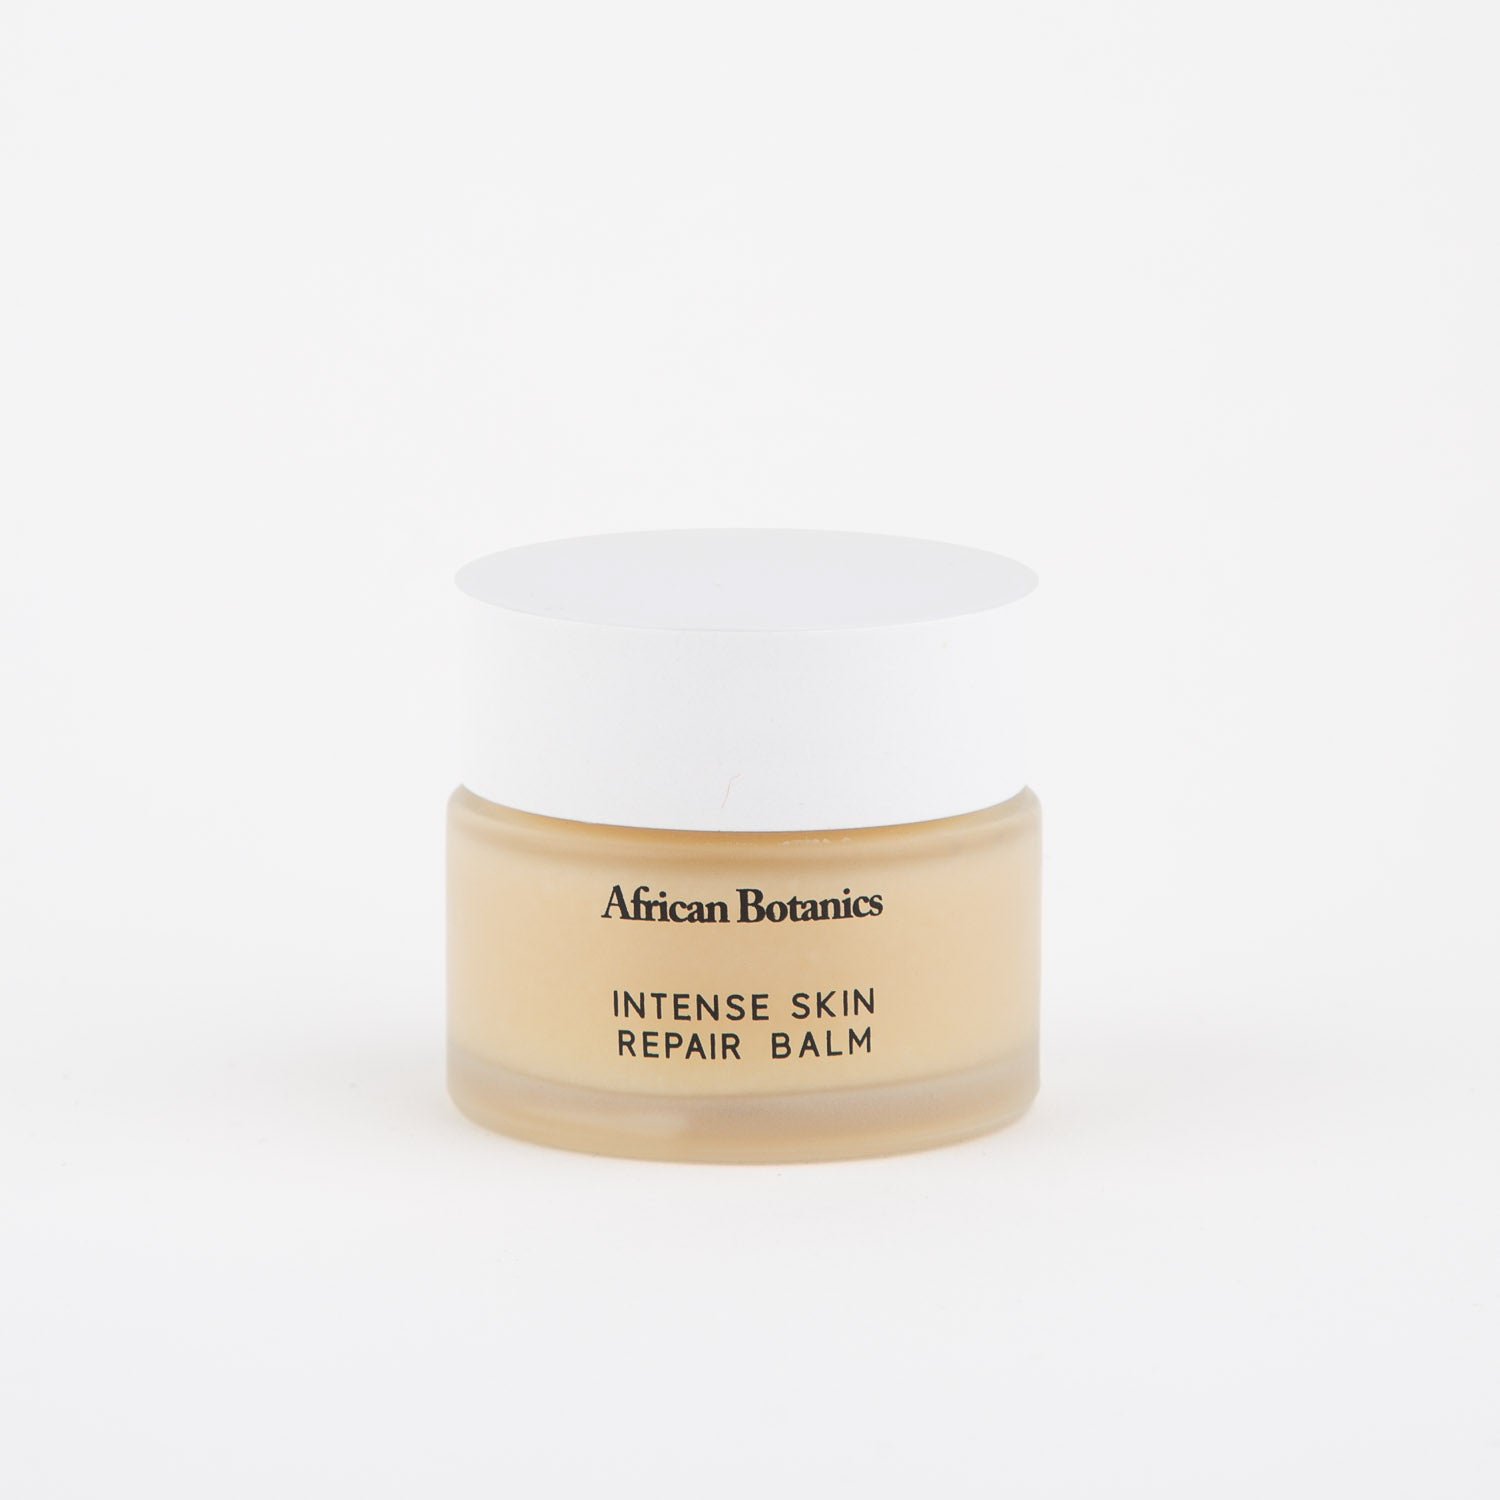 Marula intense skin repair balm skincare by African Botanics at Secret Location